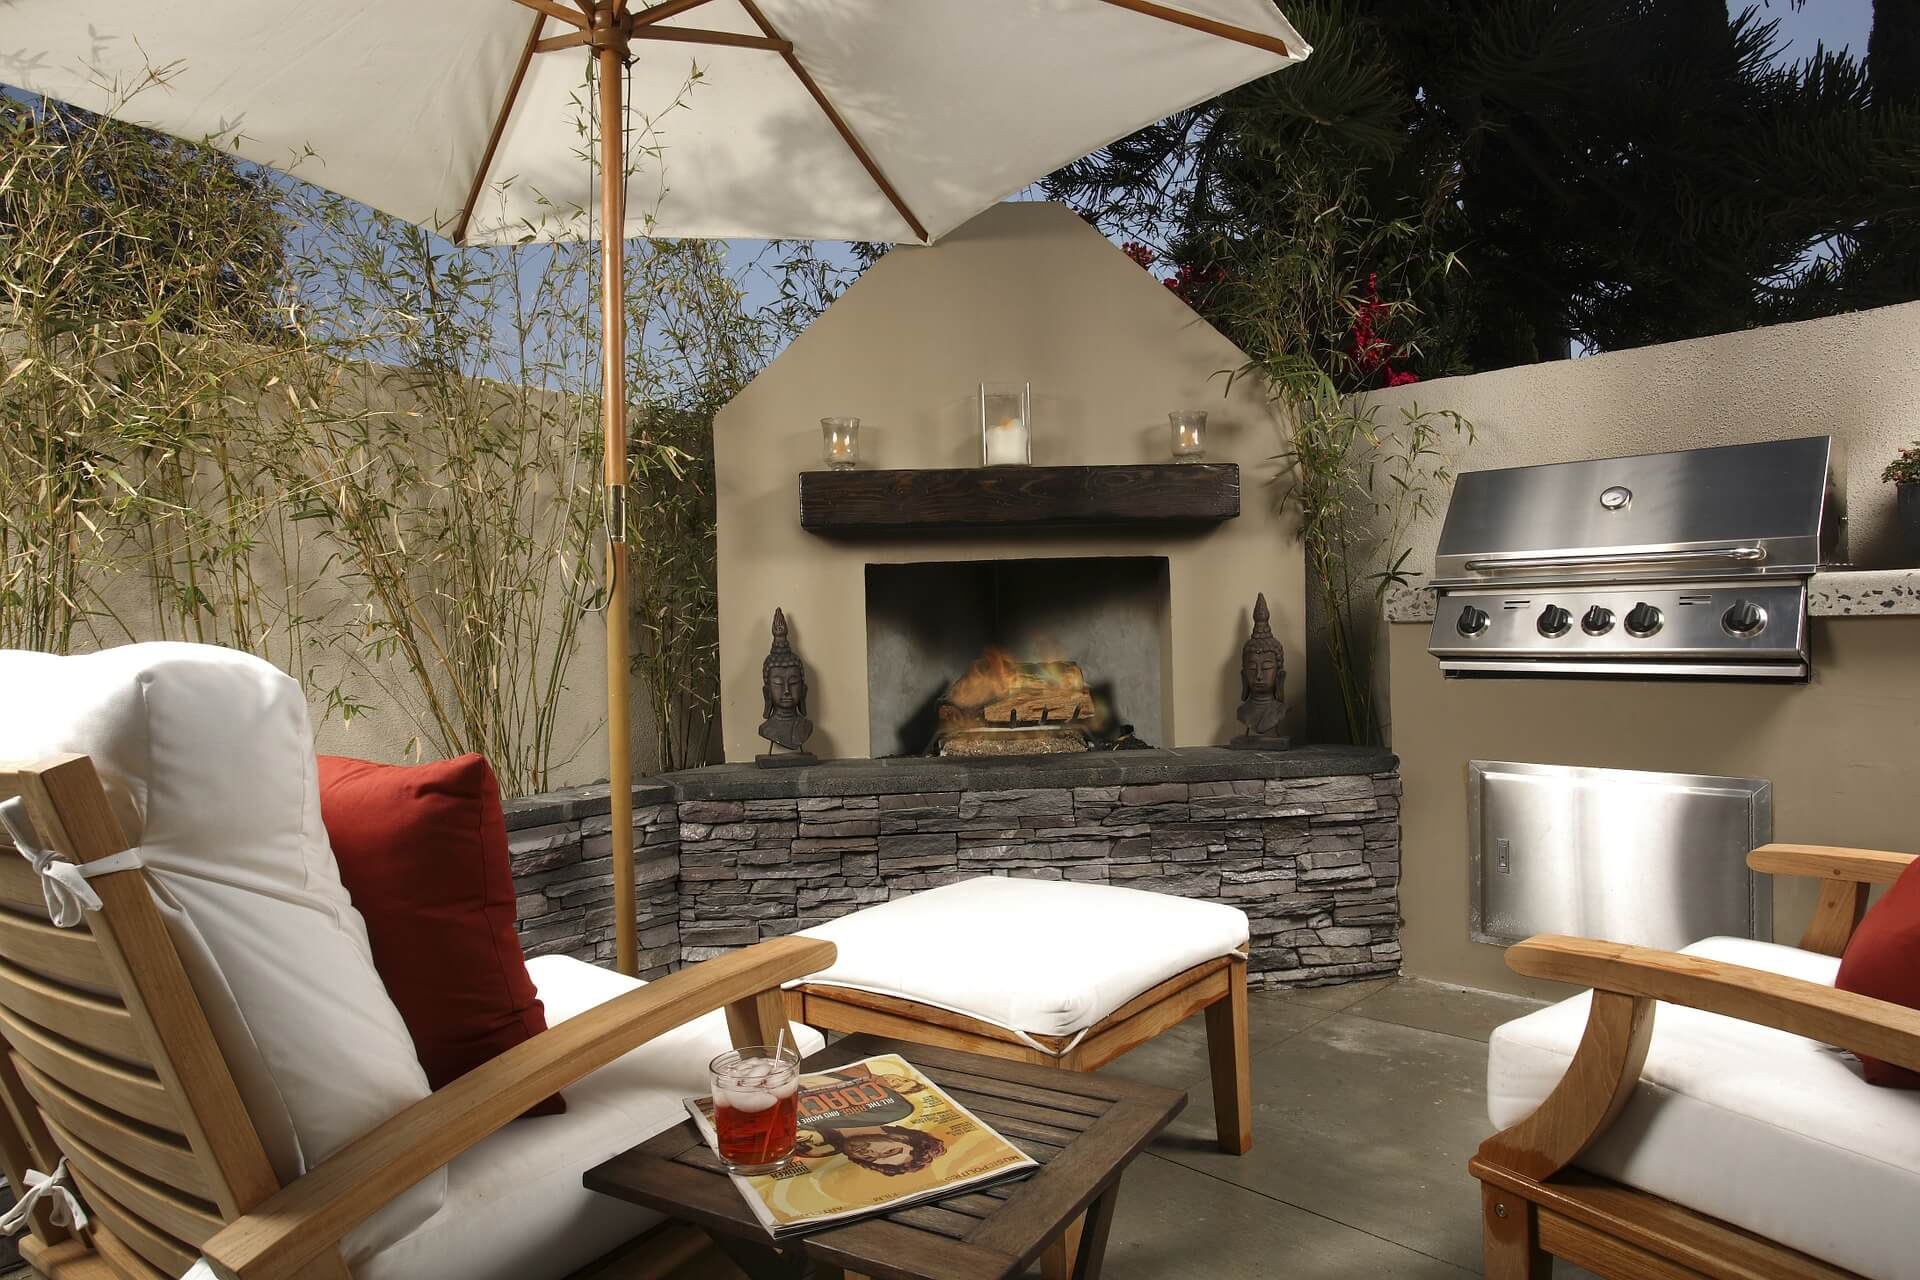 An outdoor patio area with chairs, a fireplace, and a built-in stainless steel grill